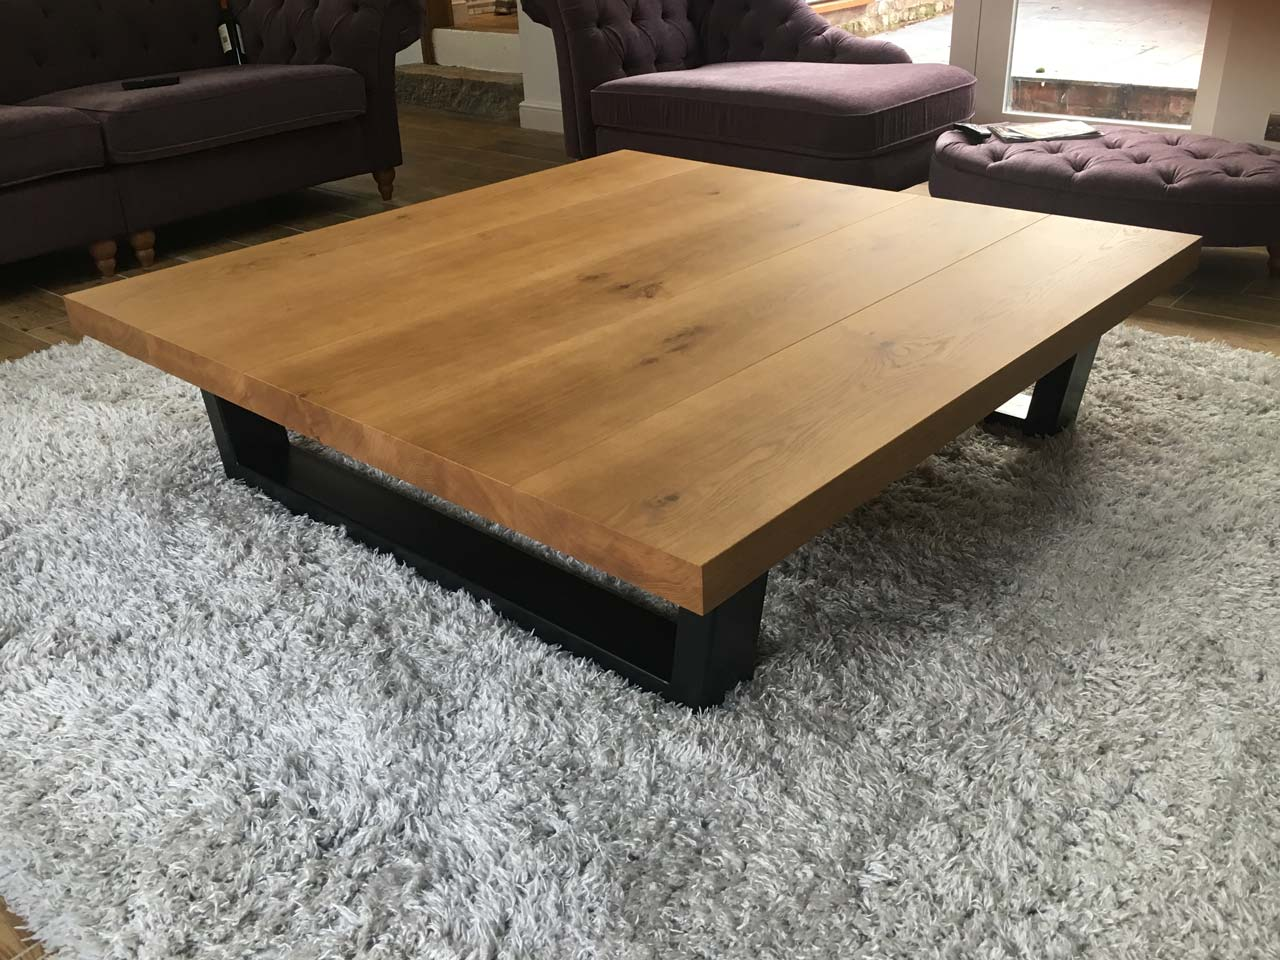 large-oak-coffee-table-project-727-abacus-tables-pic2